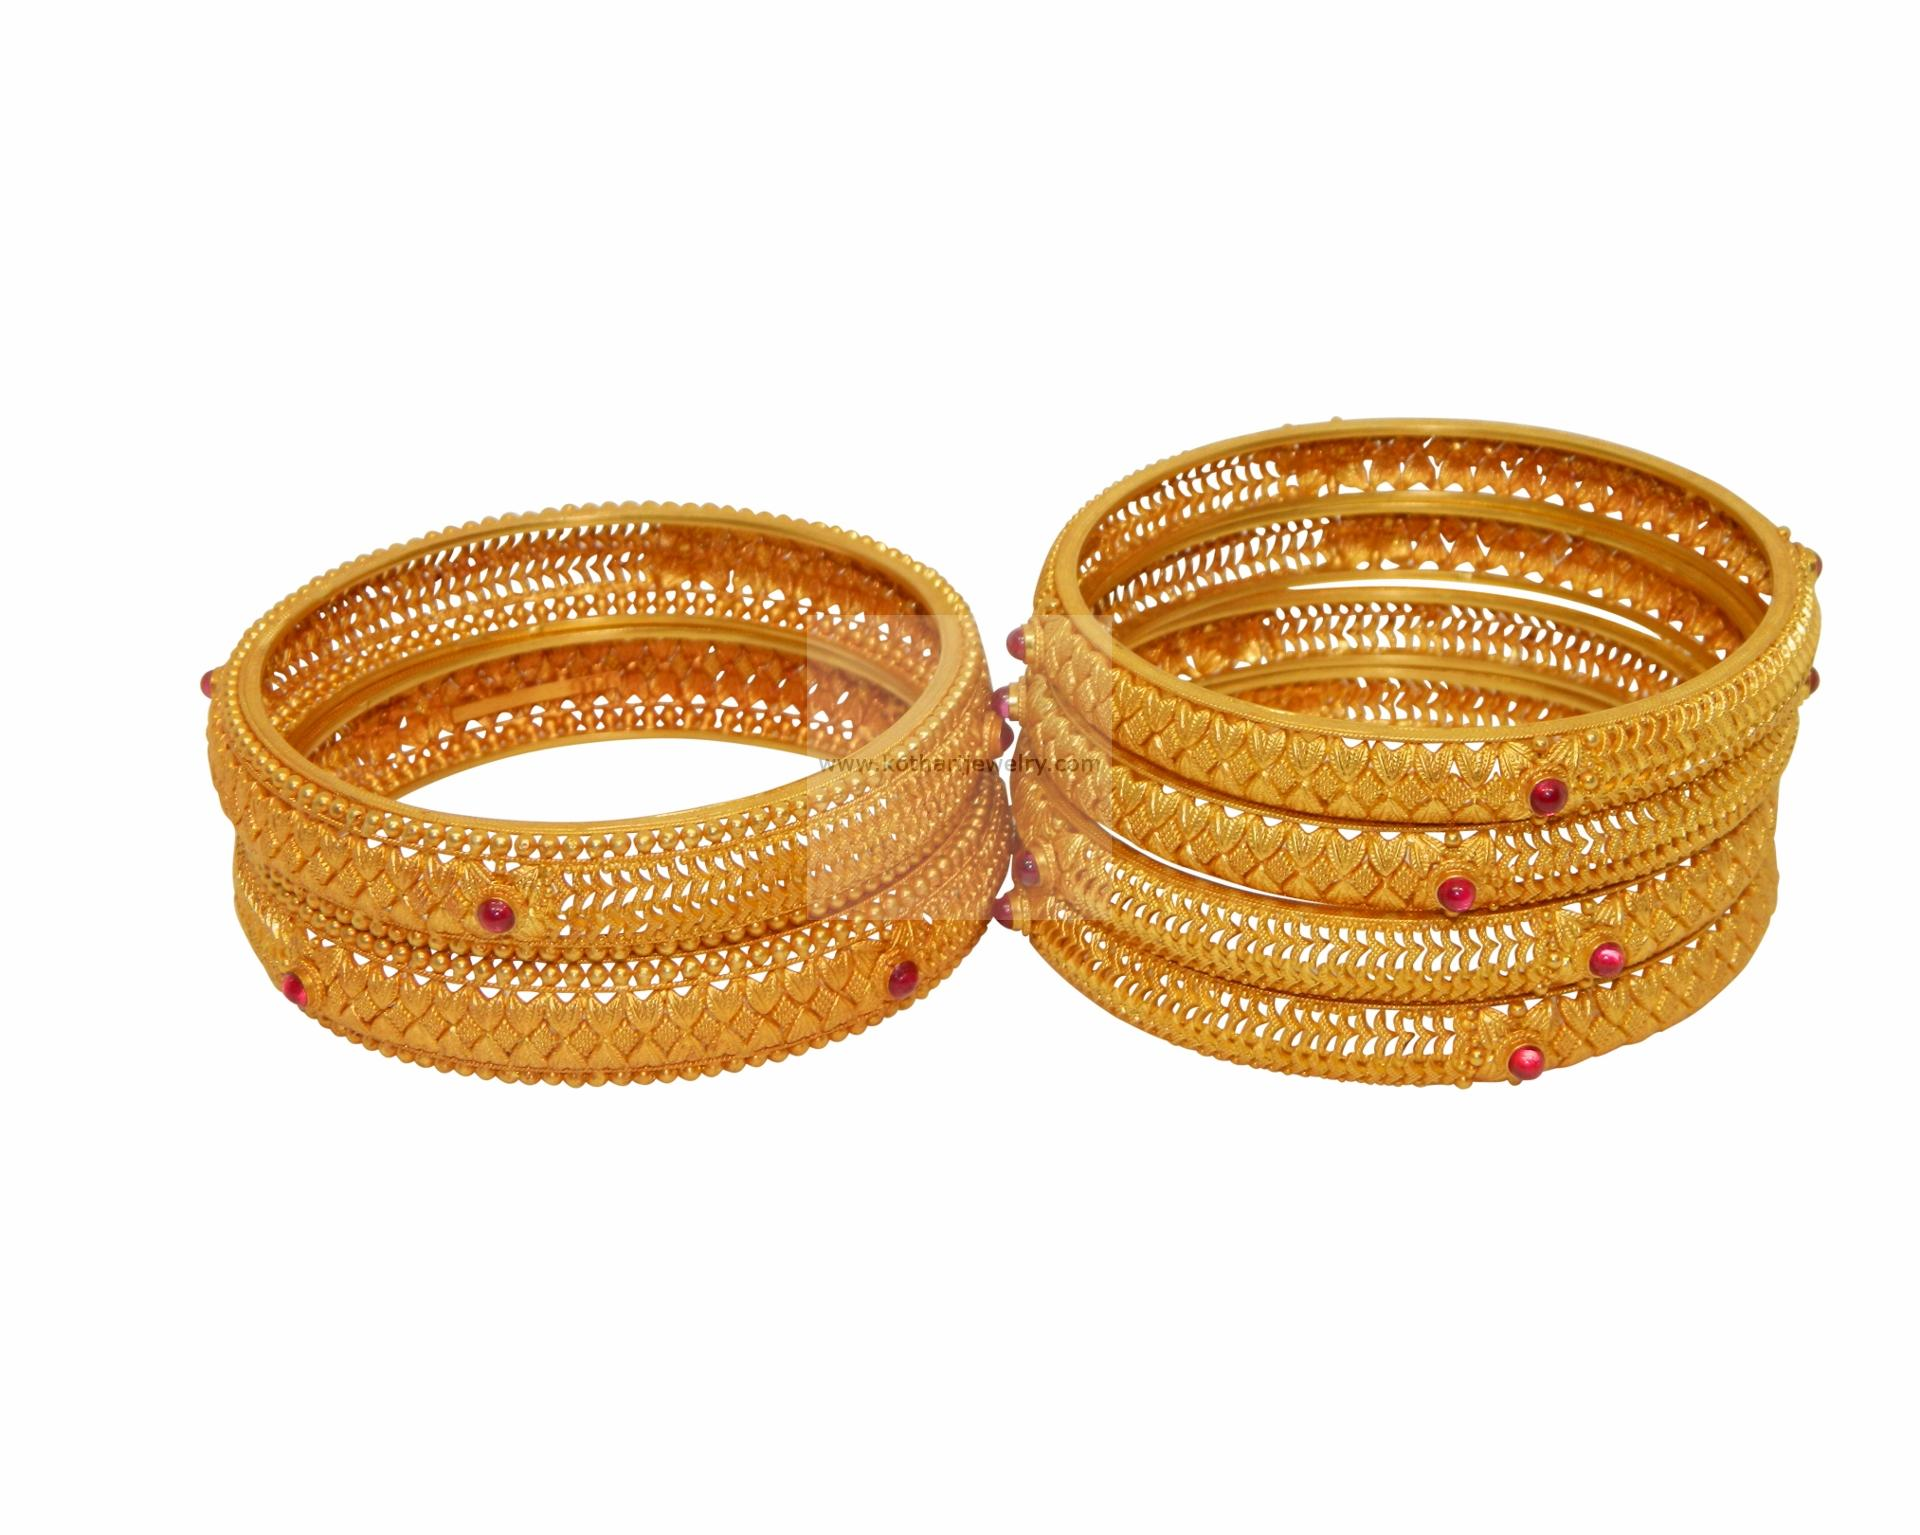 images pendant gold mangal sutra and on best pinterest bangles oxide bracelets